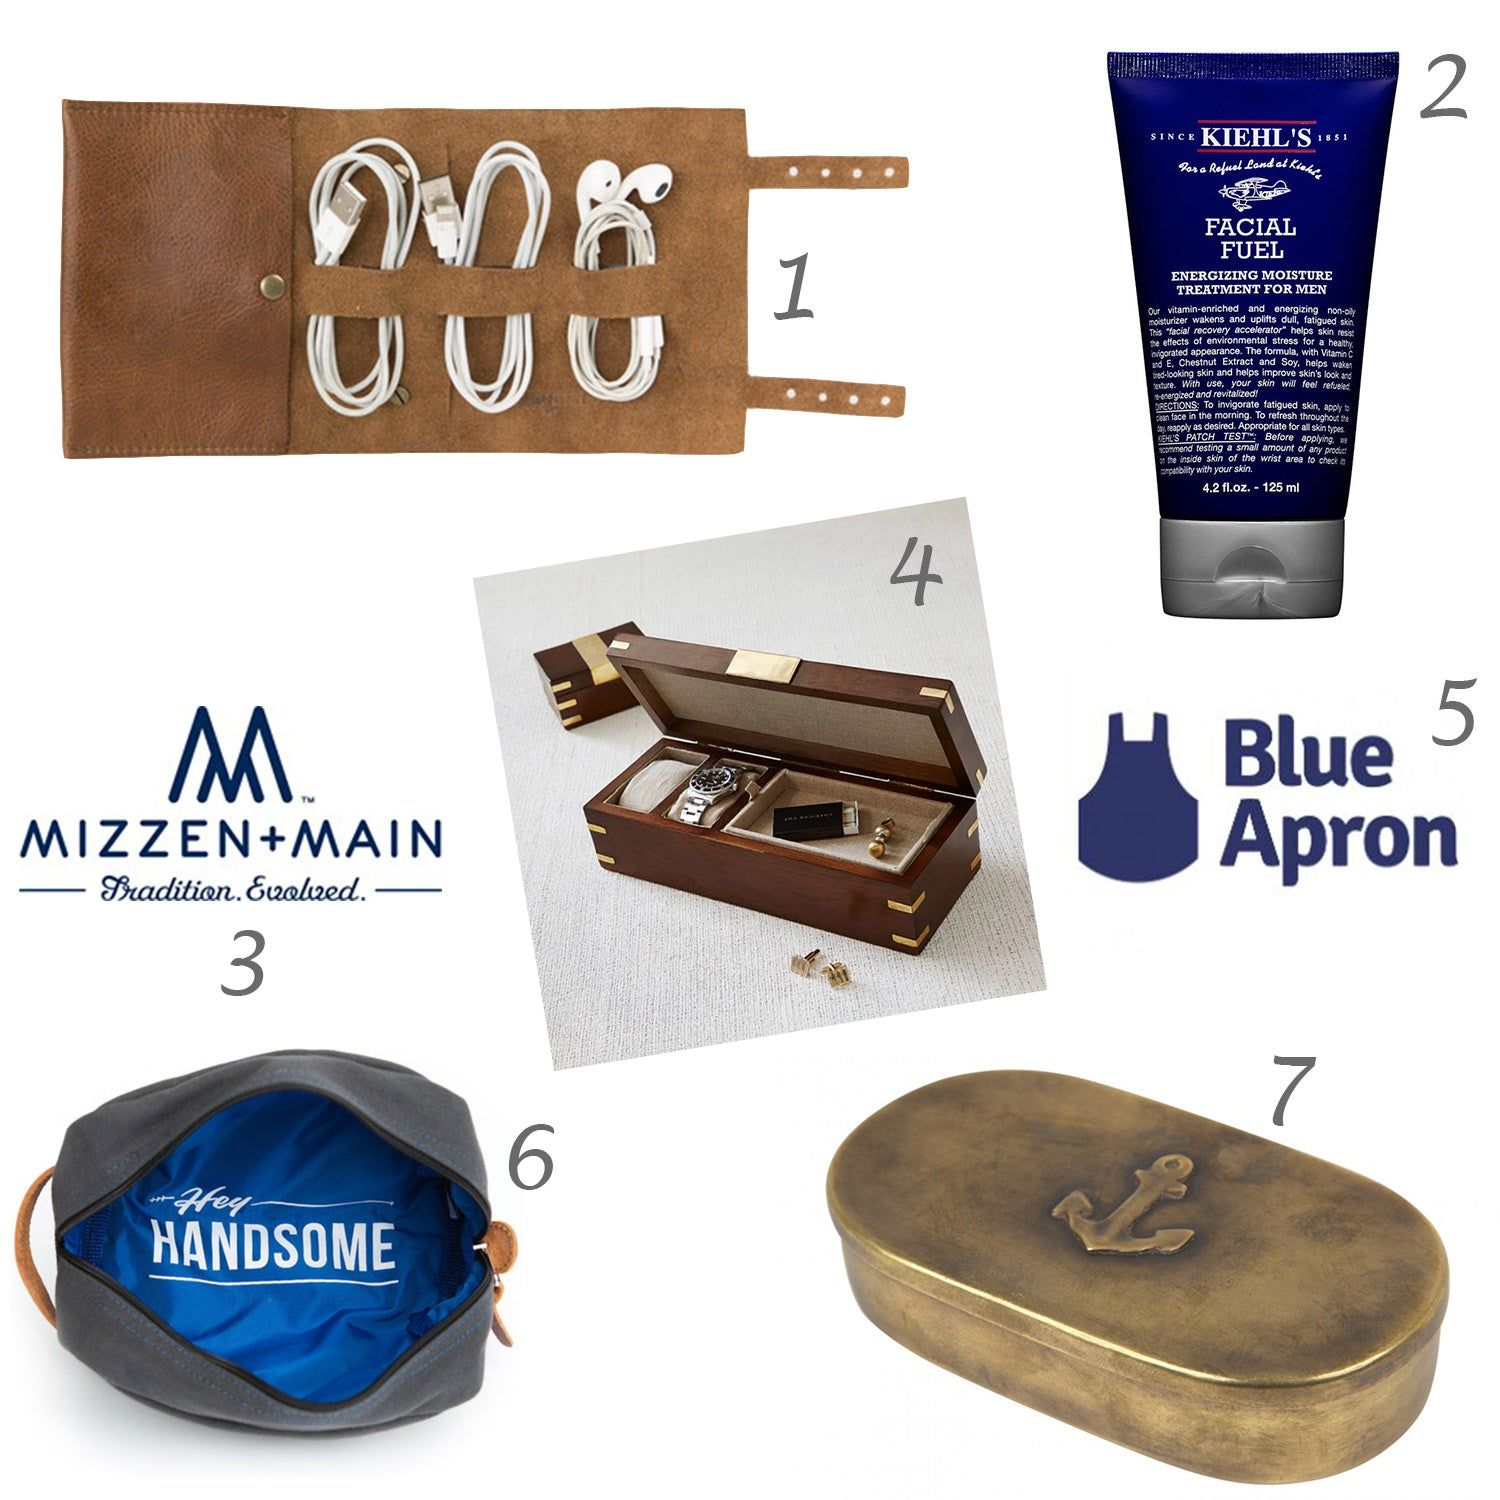 Bandito Organizer, this is ground, Facial Fuel,  Kiehl's lotion, shaving lotion, Mizzen + Main, Wood + Brass Watch Box, West Elm box, Food Delivery + Recipes from Blue Apron, Hey Handsome Shaving Kit Bag, Anchor Box, Jayson Home